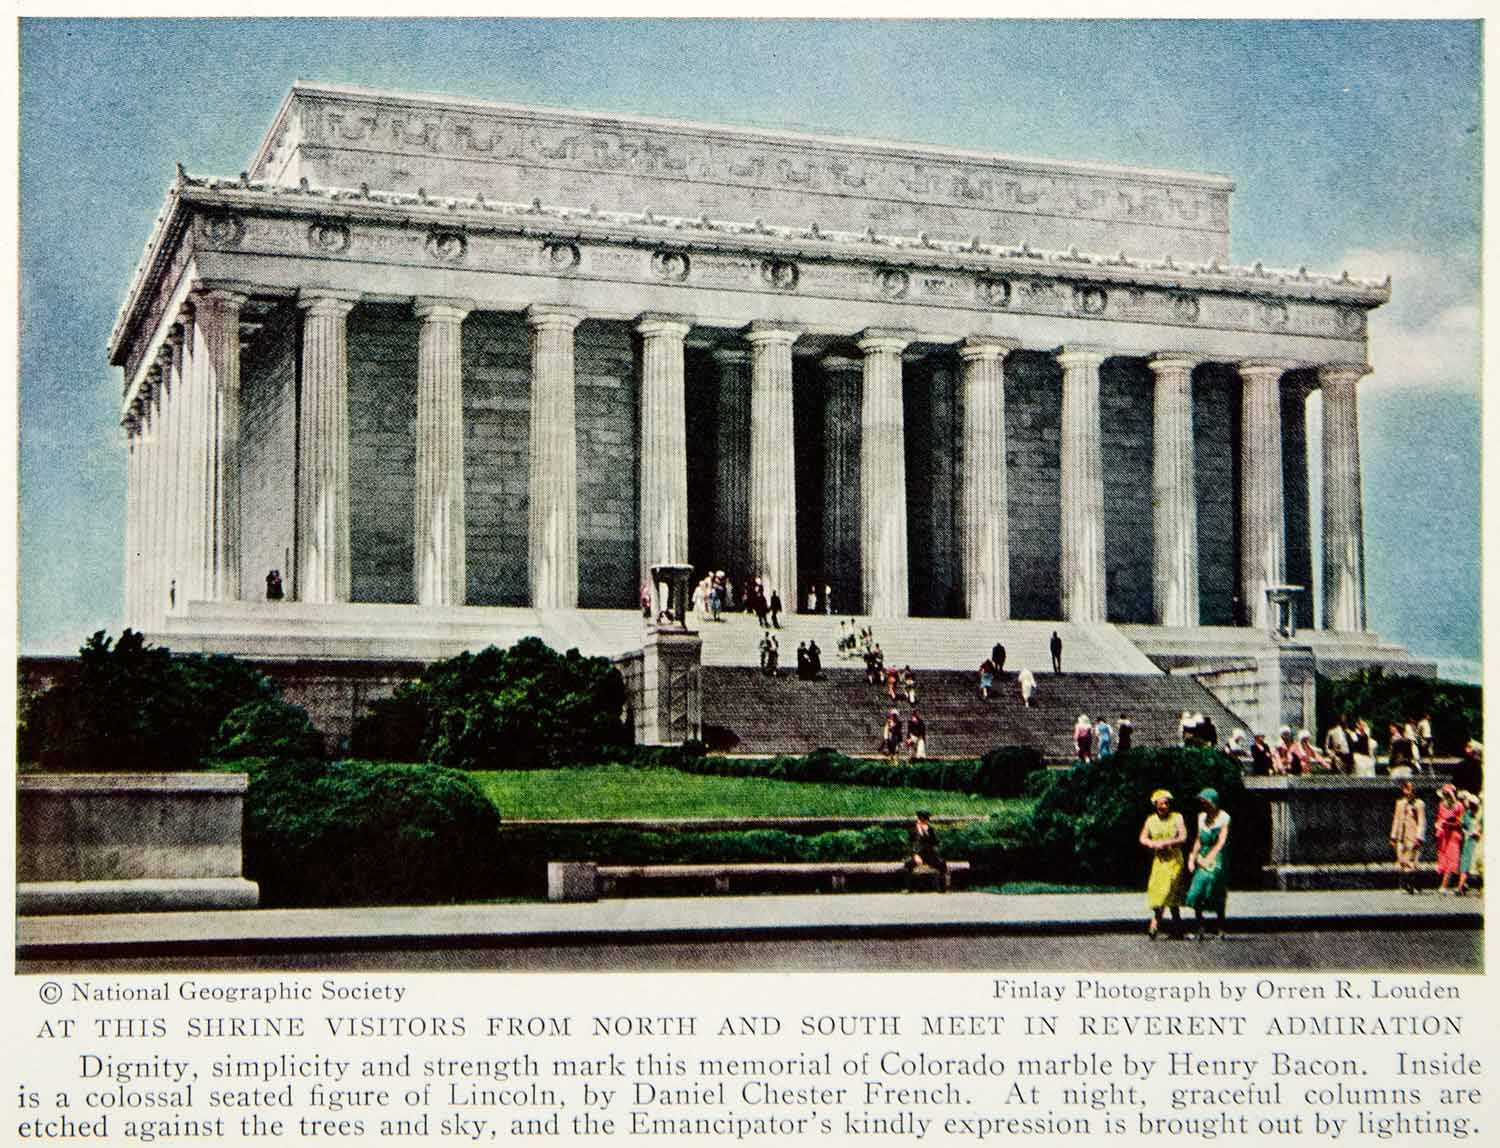 1935 Color Print Lincoln Monument Memorial Exterior Washington D.C. Image NGMA6